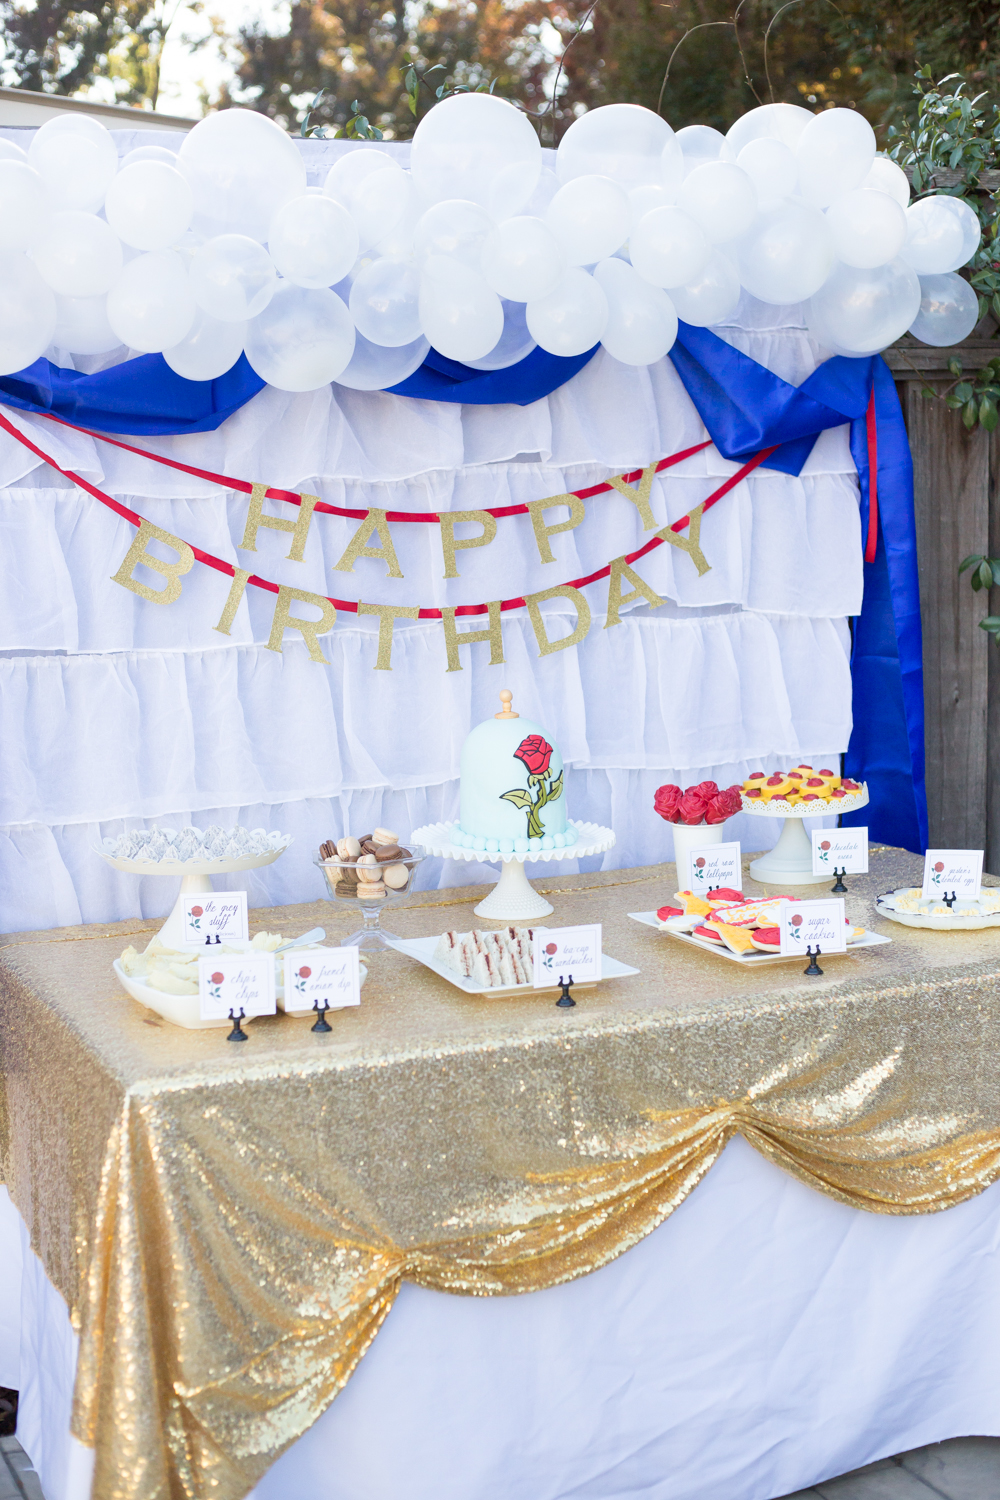 Awe Inspiring Beauty And The Beast Birthday Party Download Free Architecture Designs Scobabritishbridgeorg